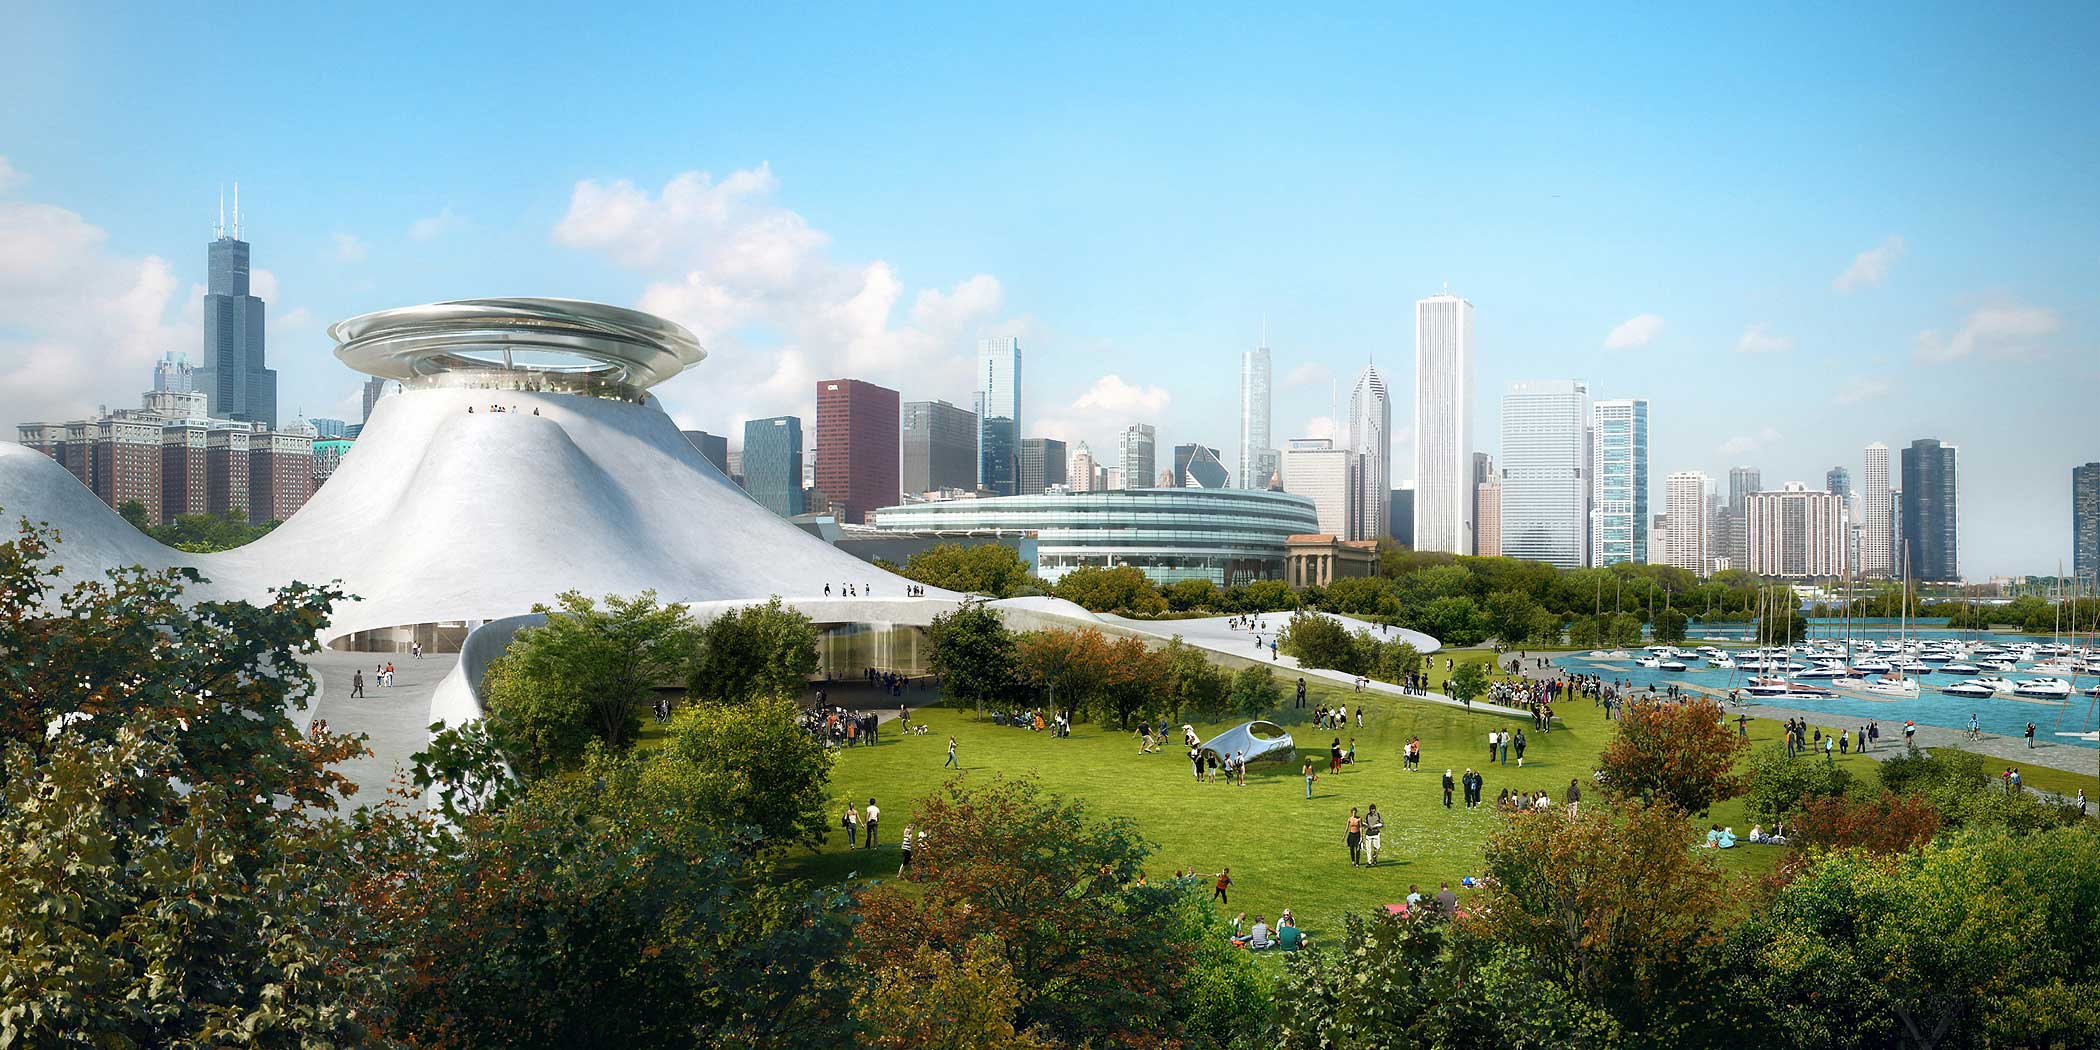 A computer rendering of the proposed Lucas Museum of Narrative Art in Chicago